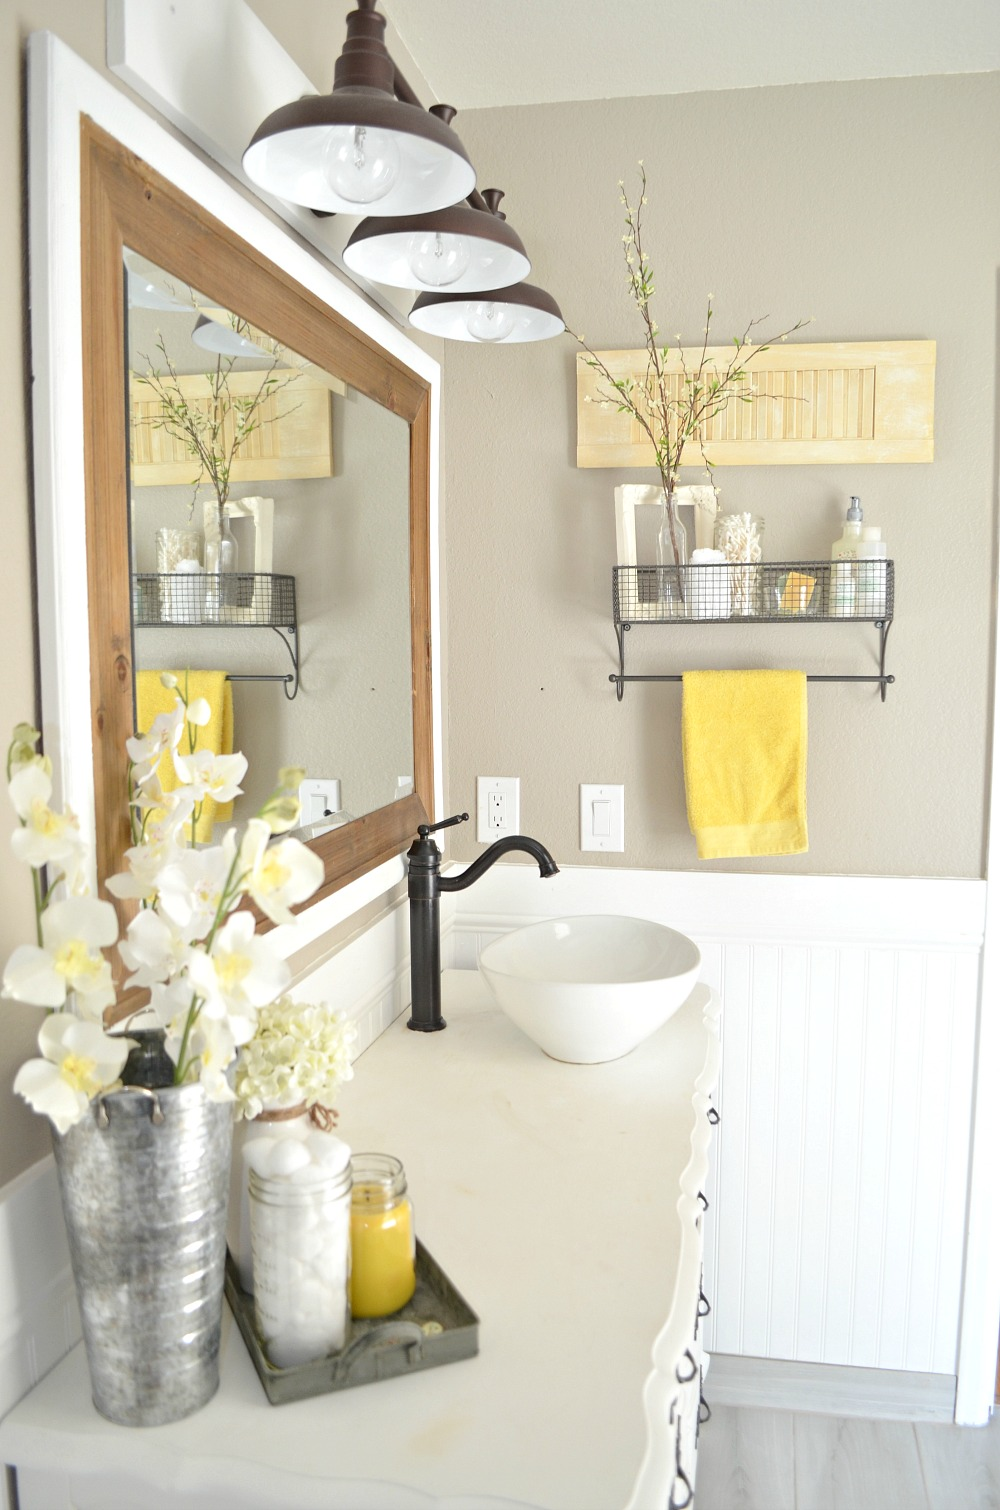 How to easily mix vintage and modern decor little for Bathroom ideas yellow tile